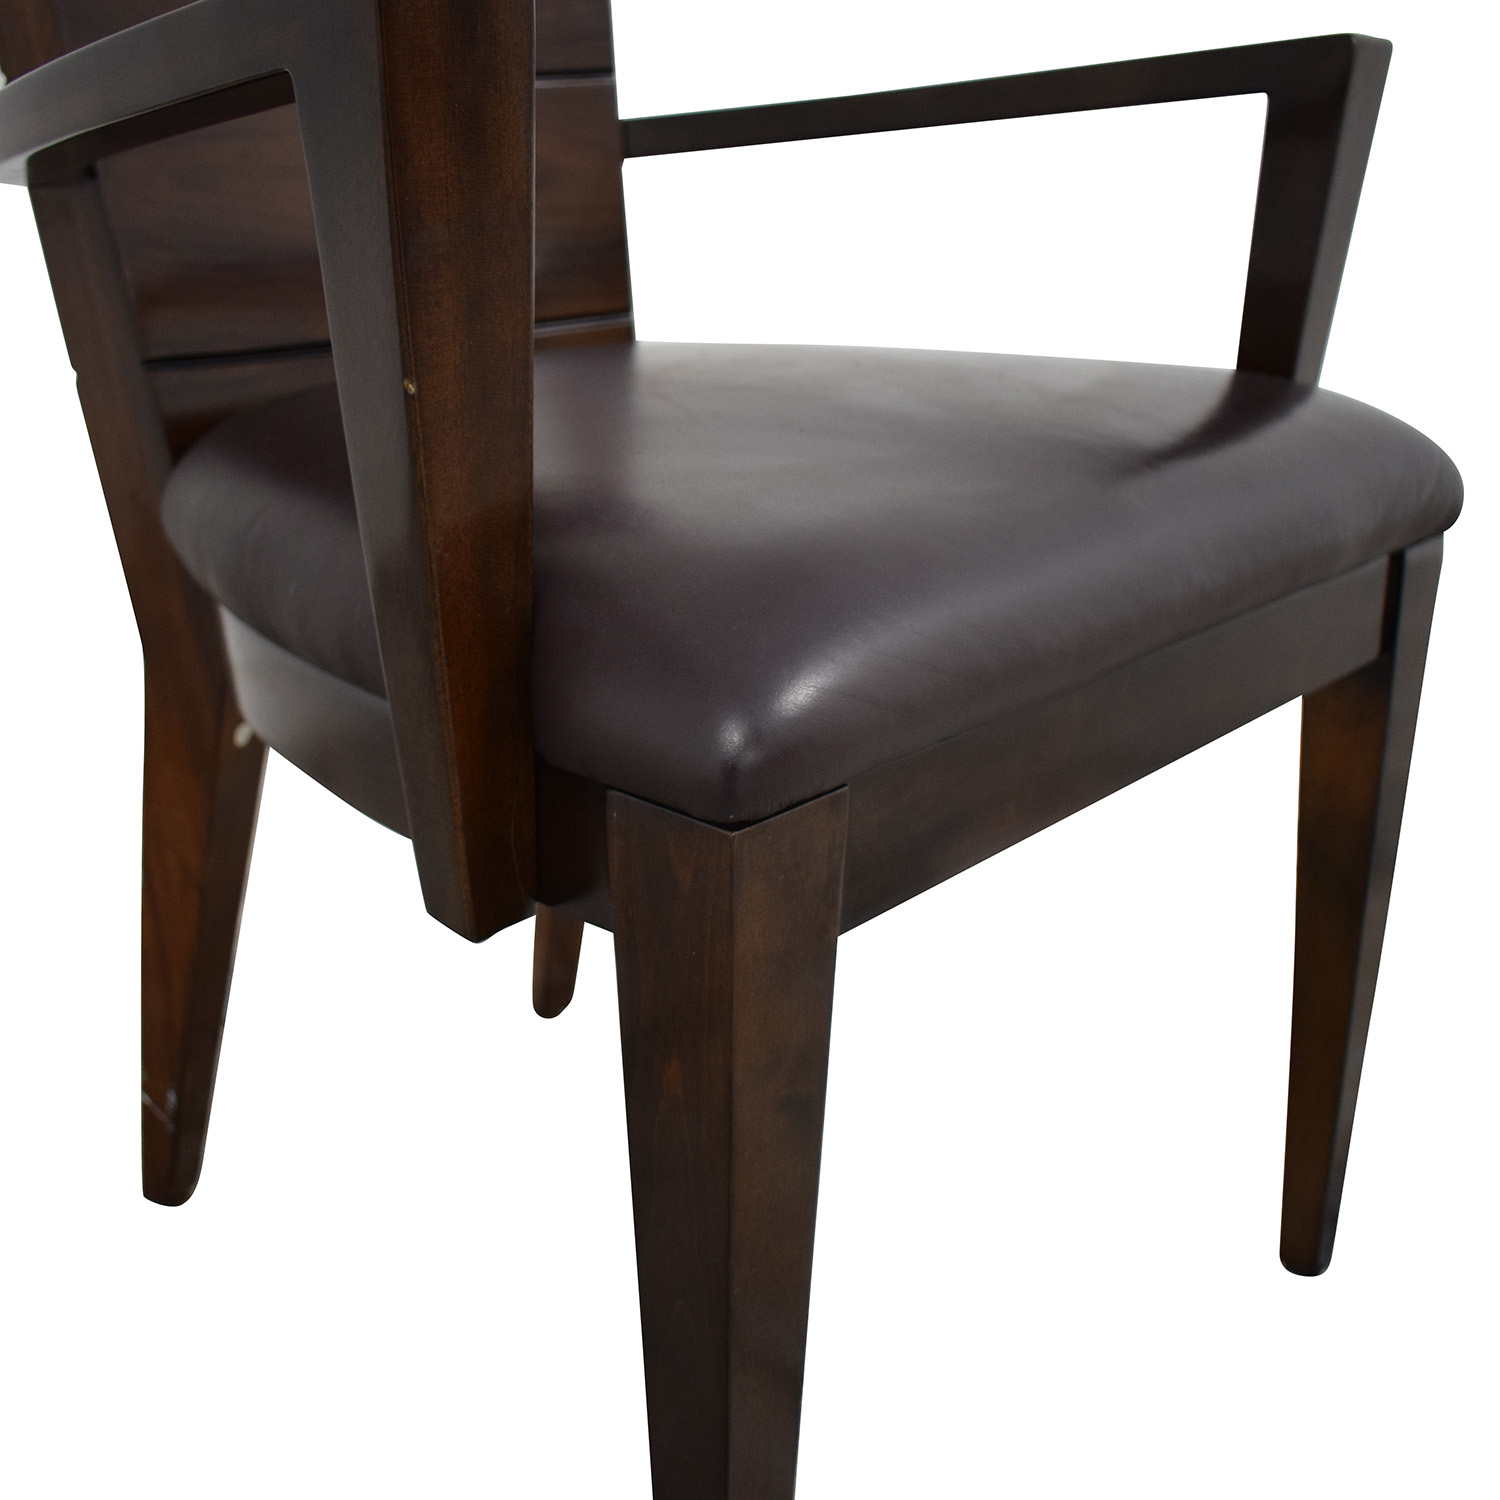 Elio Elio High Gloss Wood and Leather Chair Chairs